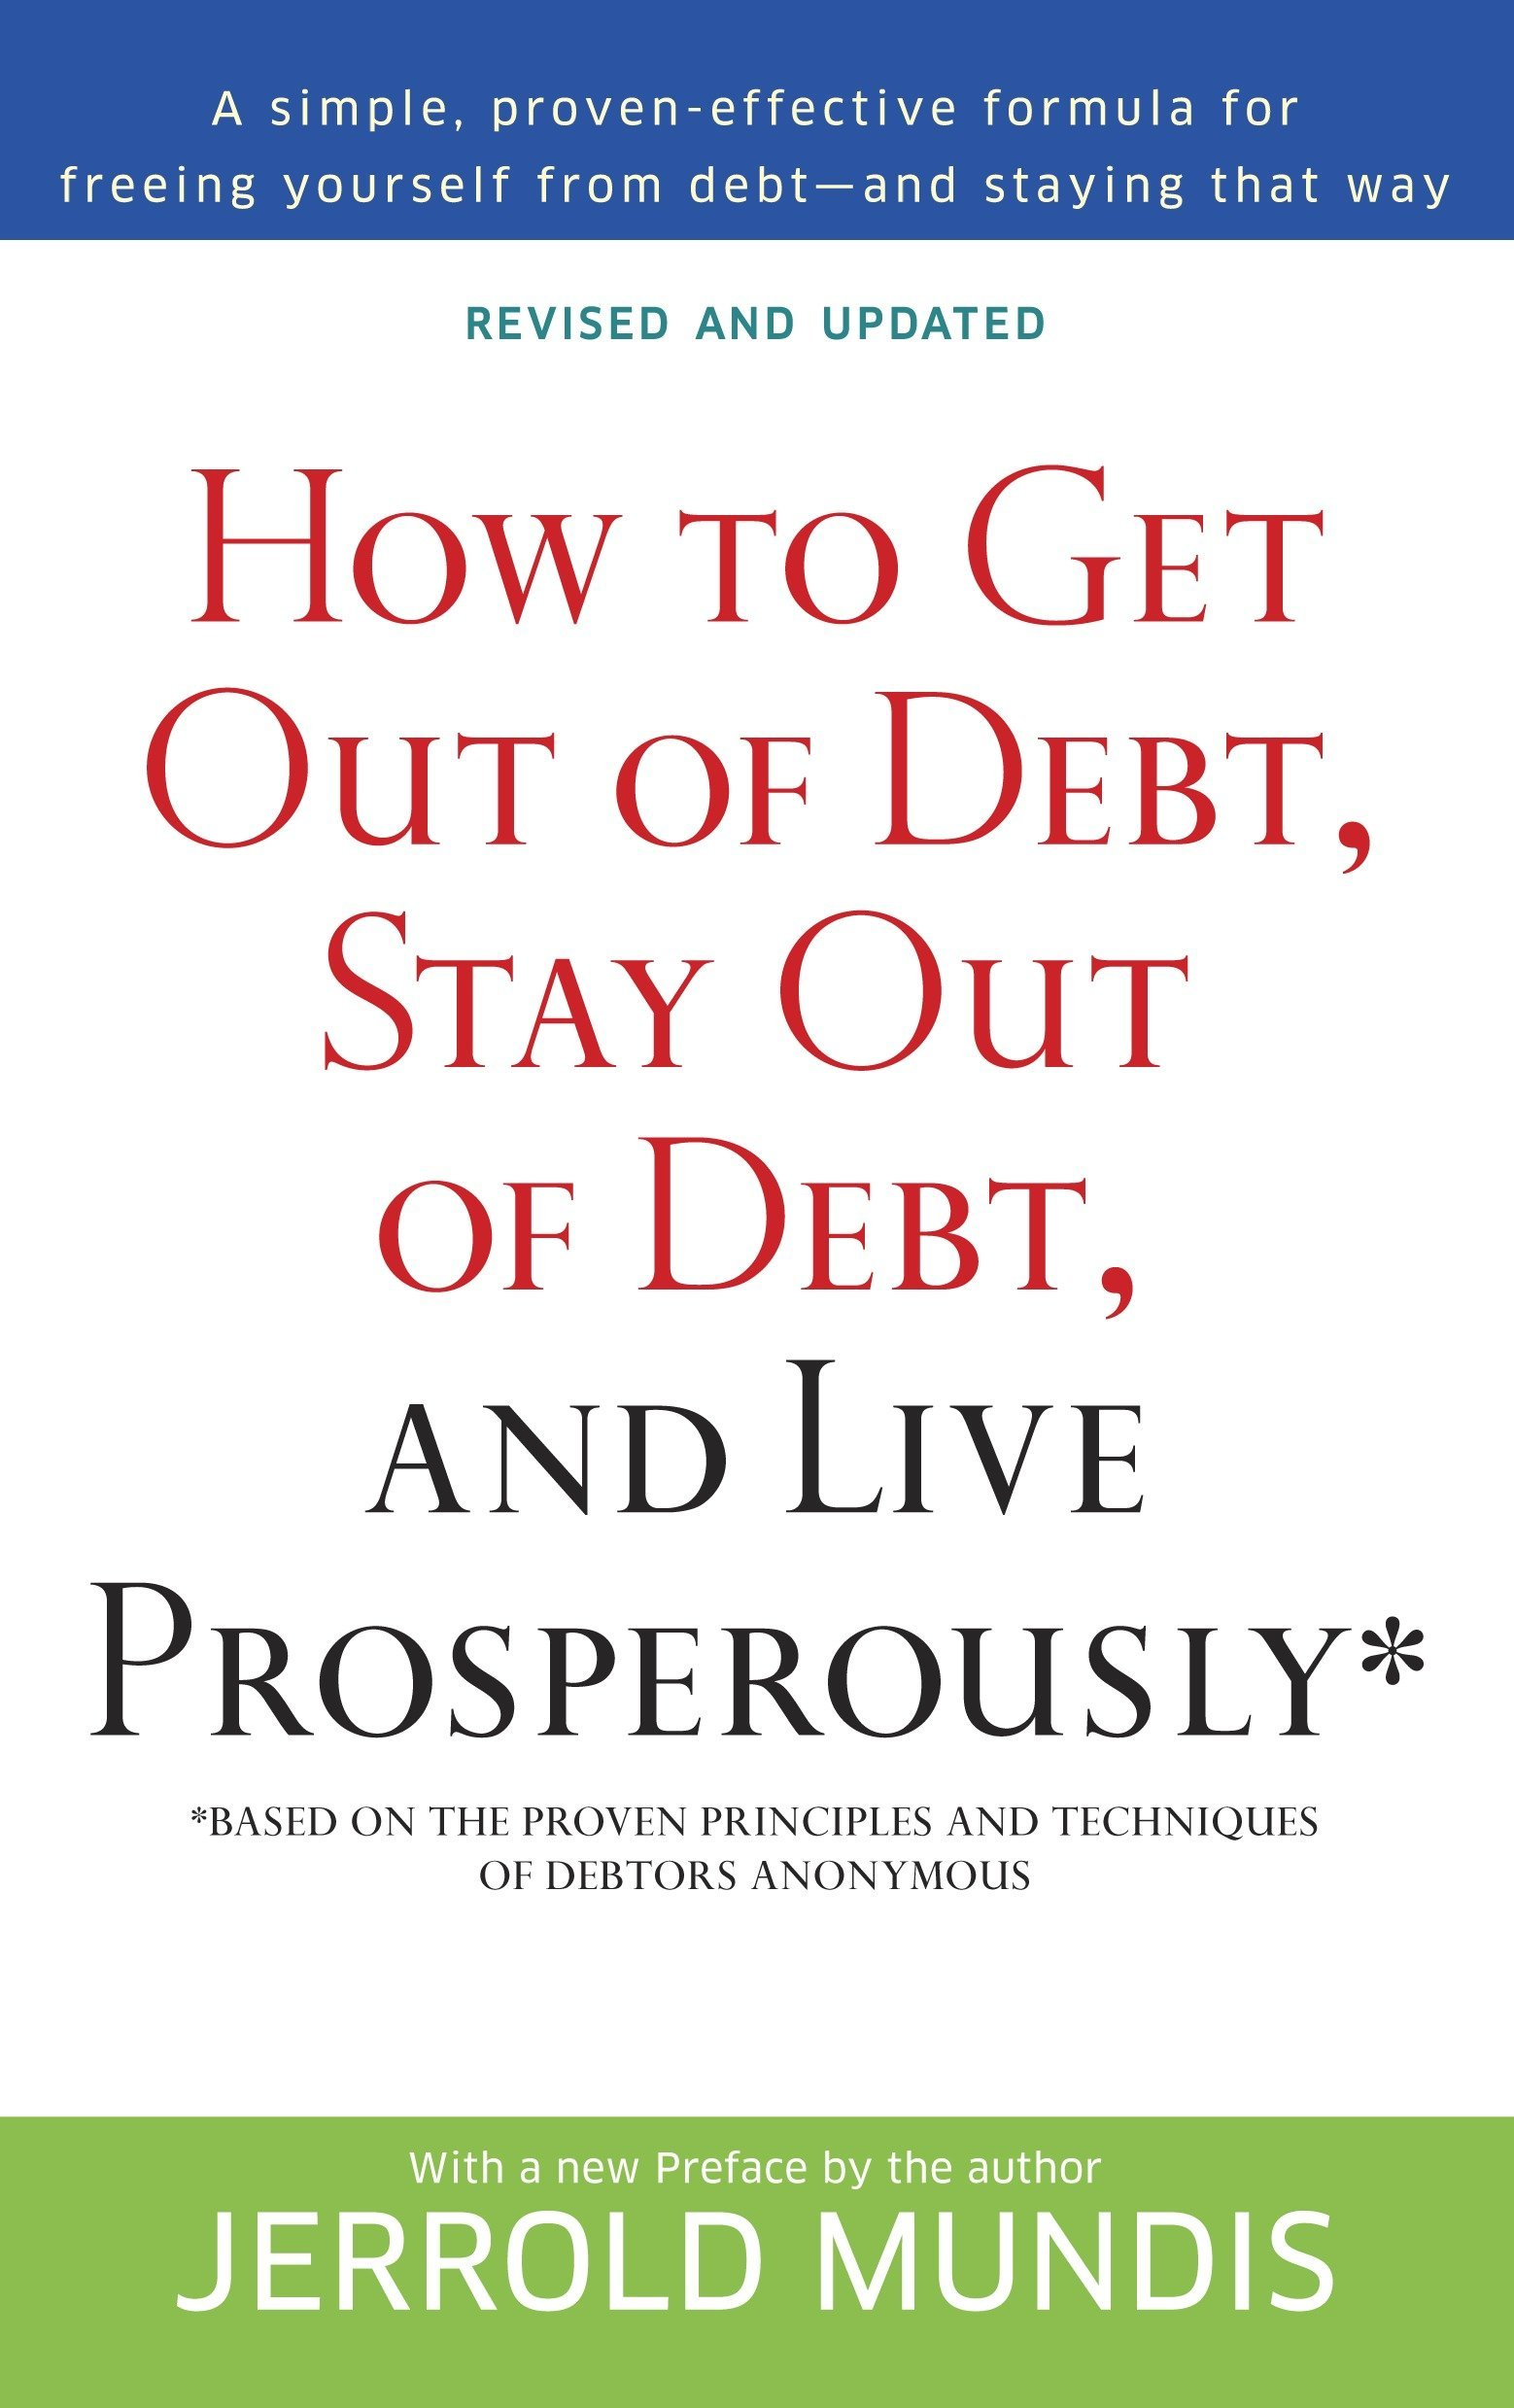 How To Get Out Of Debt Stay And Live Prosperously Based On The Proven Principles Techniques Debtors Anonymous Jerrold Mundis